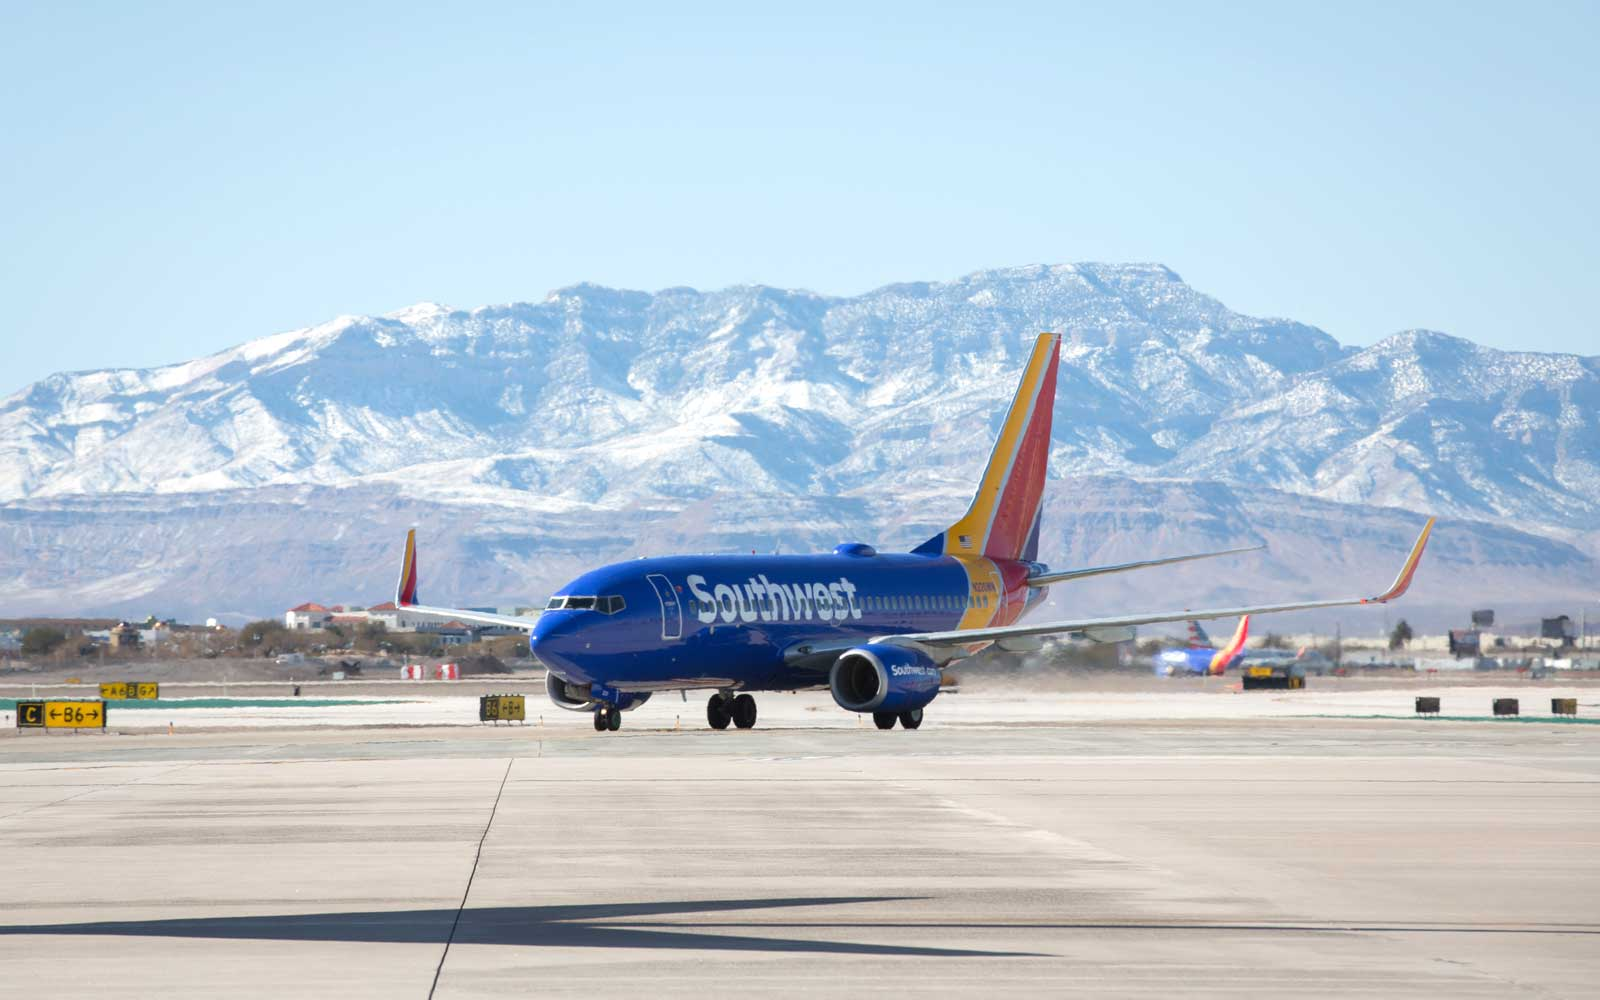 Southwest Airlines Airplane Mountains Background